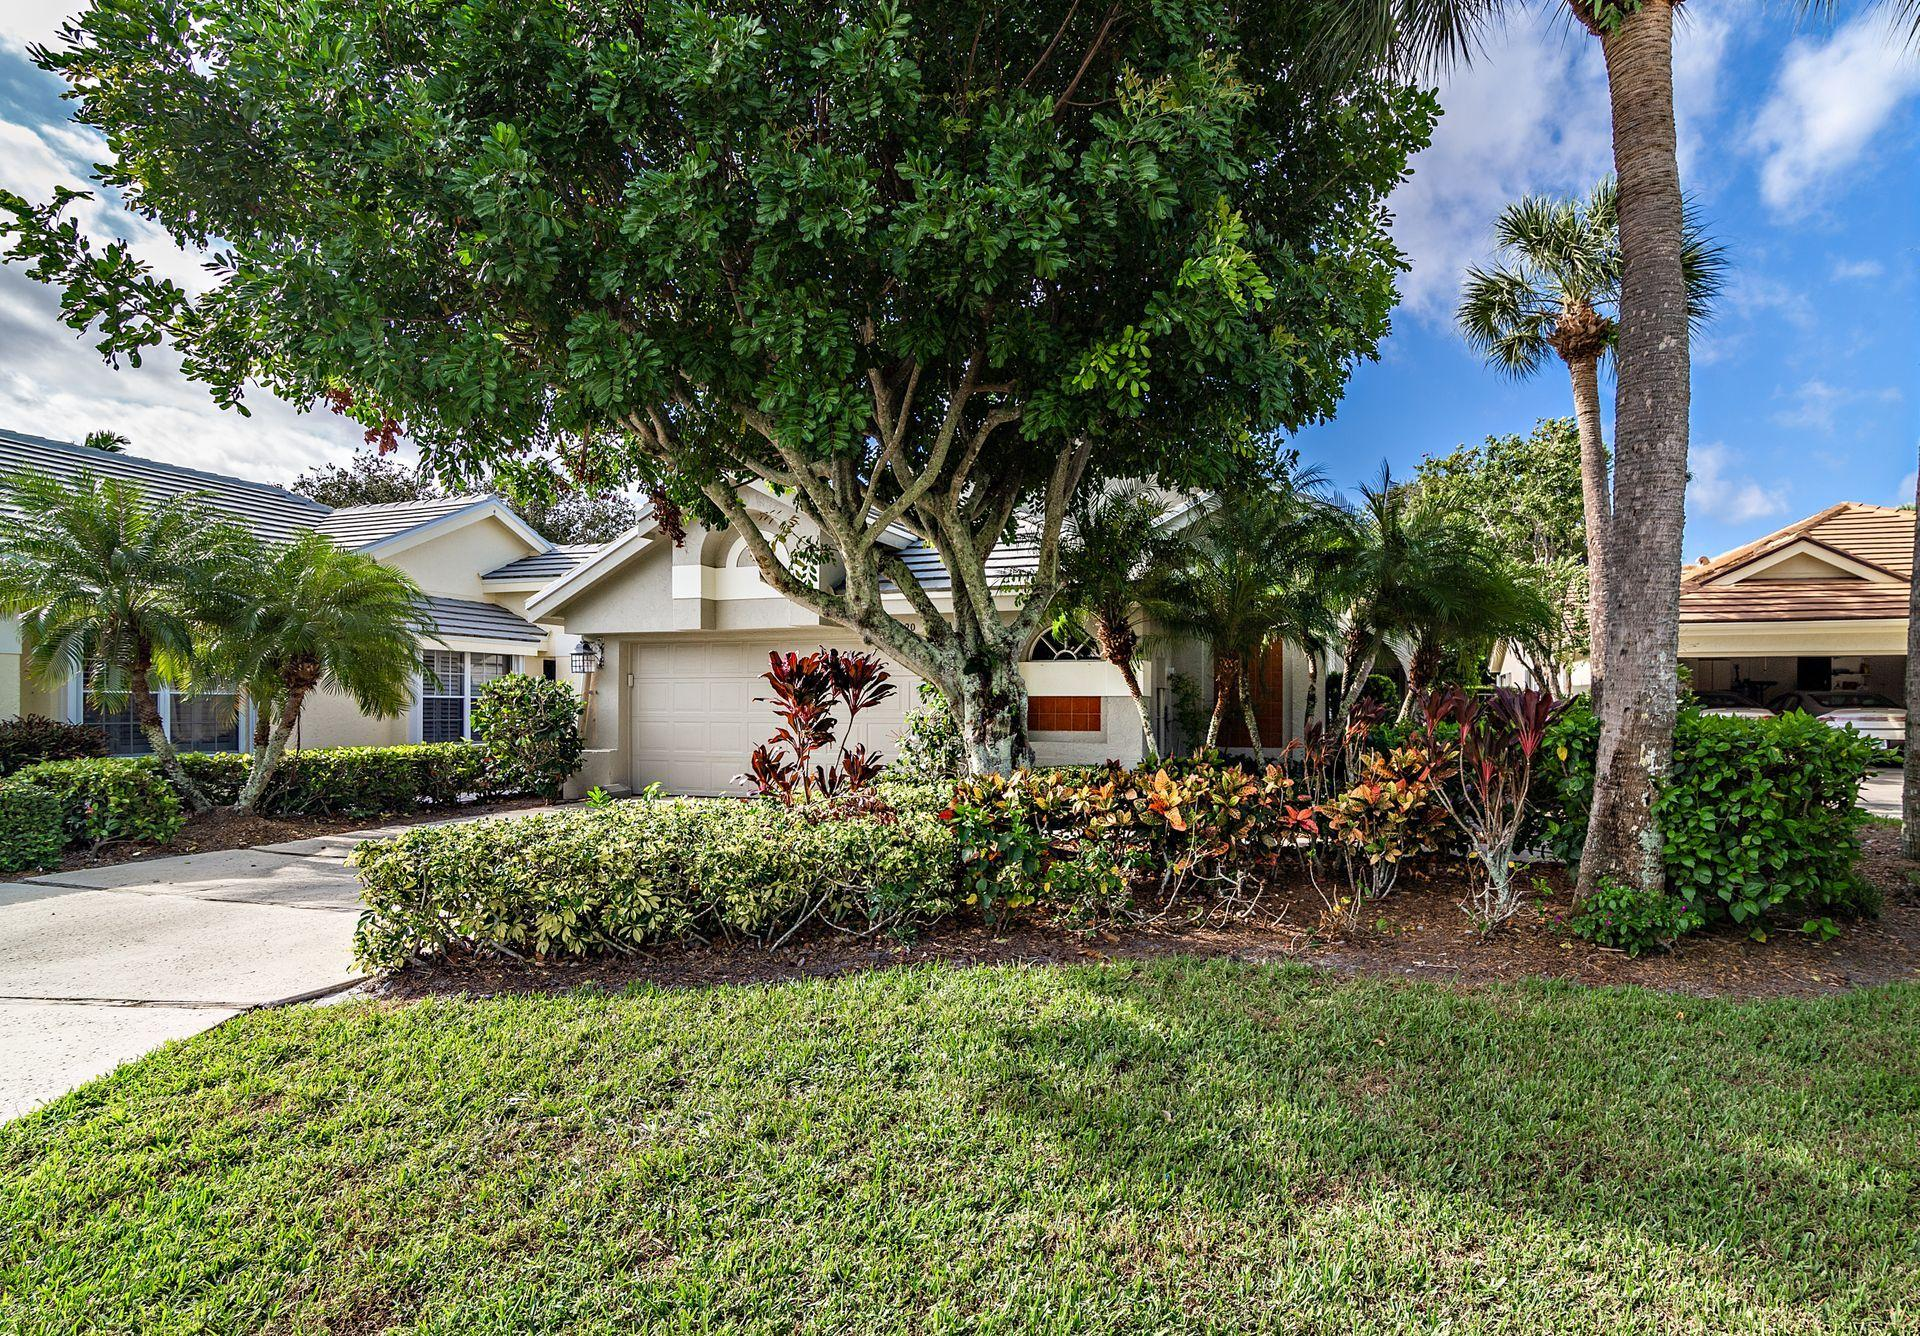 3920 Shearwater Drive, Jupiter, Florida 33477, 3 Bedrooms Bedrooms, ,2.1 BathroomsBathrooms,A,Single family,Shearwater,RX-10476714